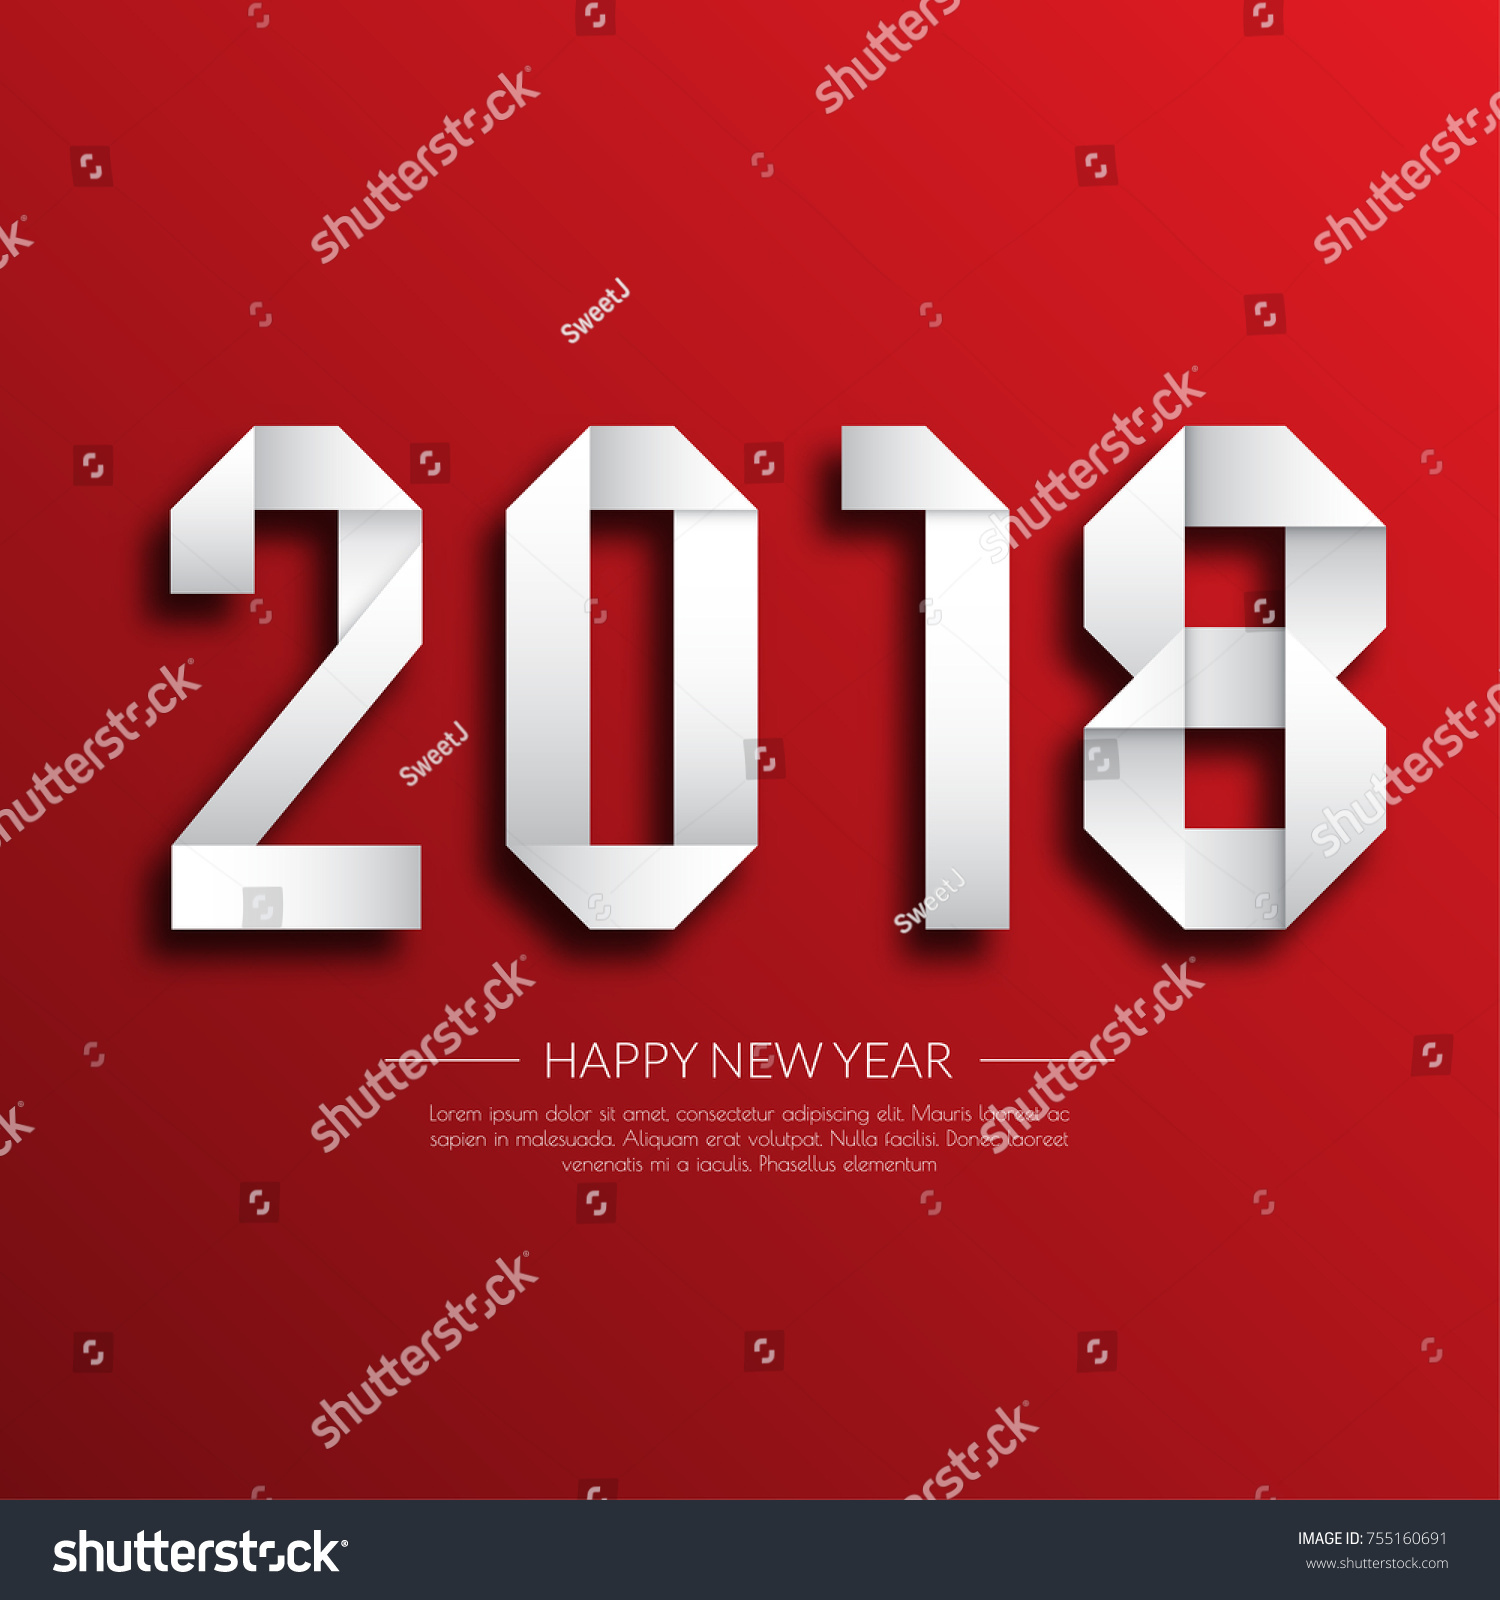 Happy New Year 2018 Greetings Card Stock Vector Royalty Free